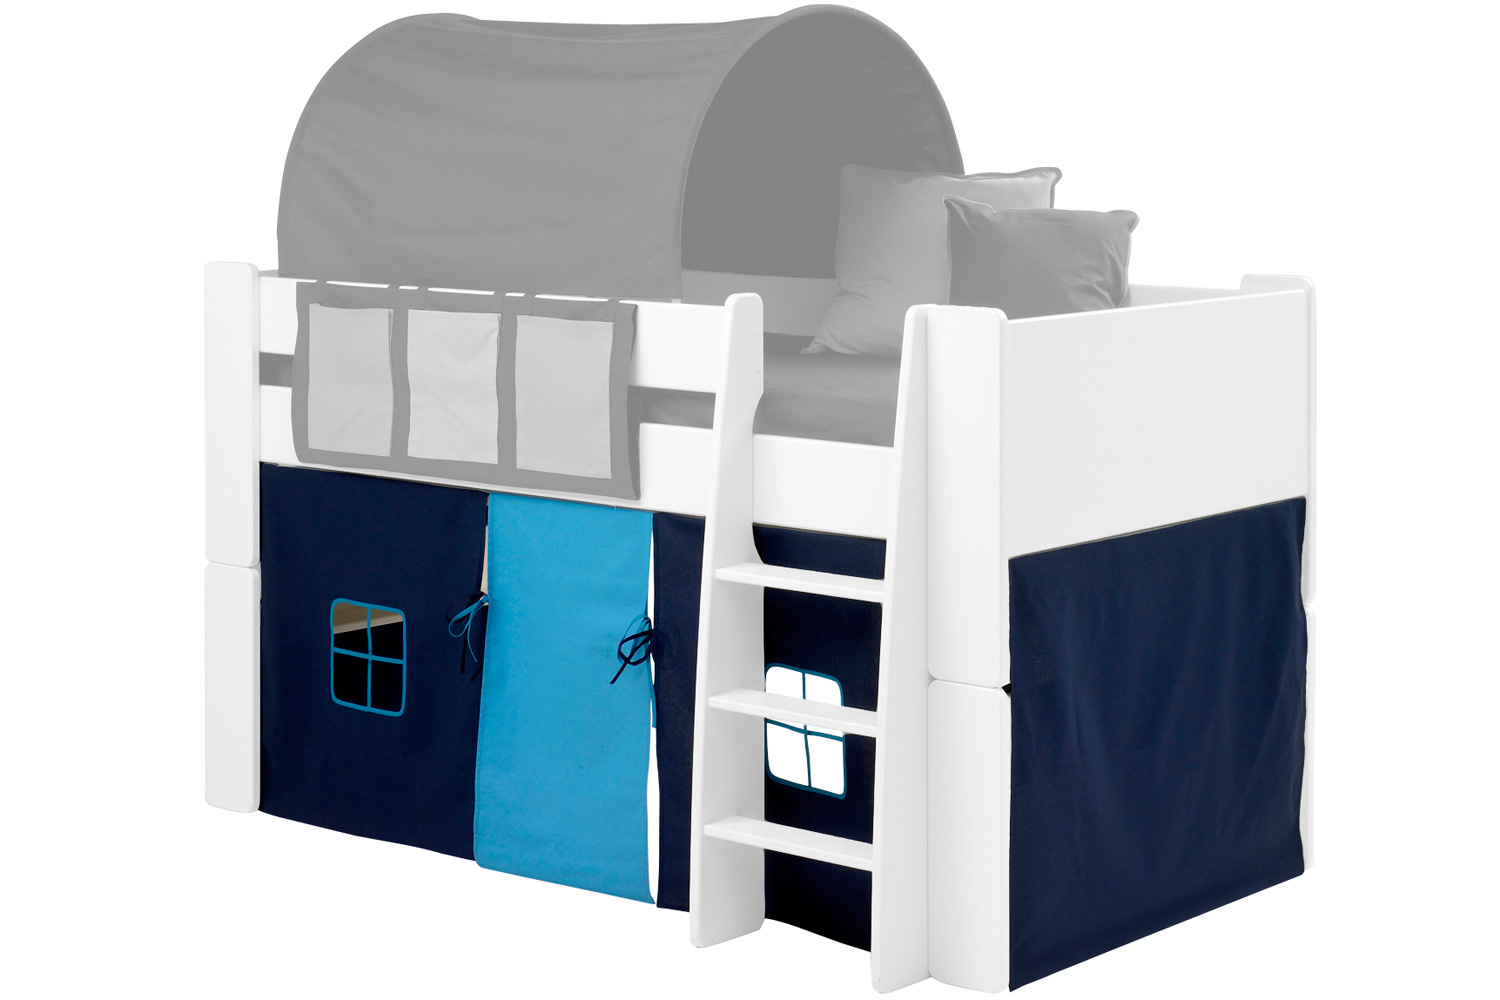 Popsicle Tent for Midsleeper Blue Bed Frame Ireland : tent blue from www.harveynorman.ie size 1500 x 1000 jpeg 168kB